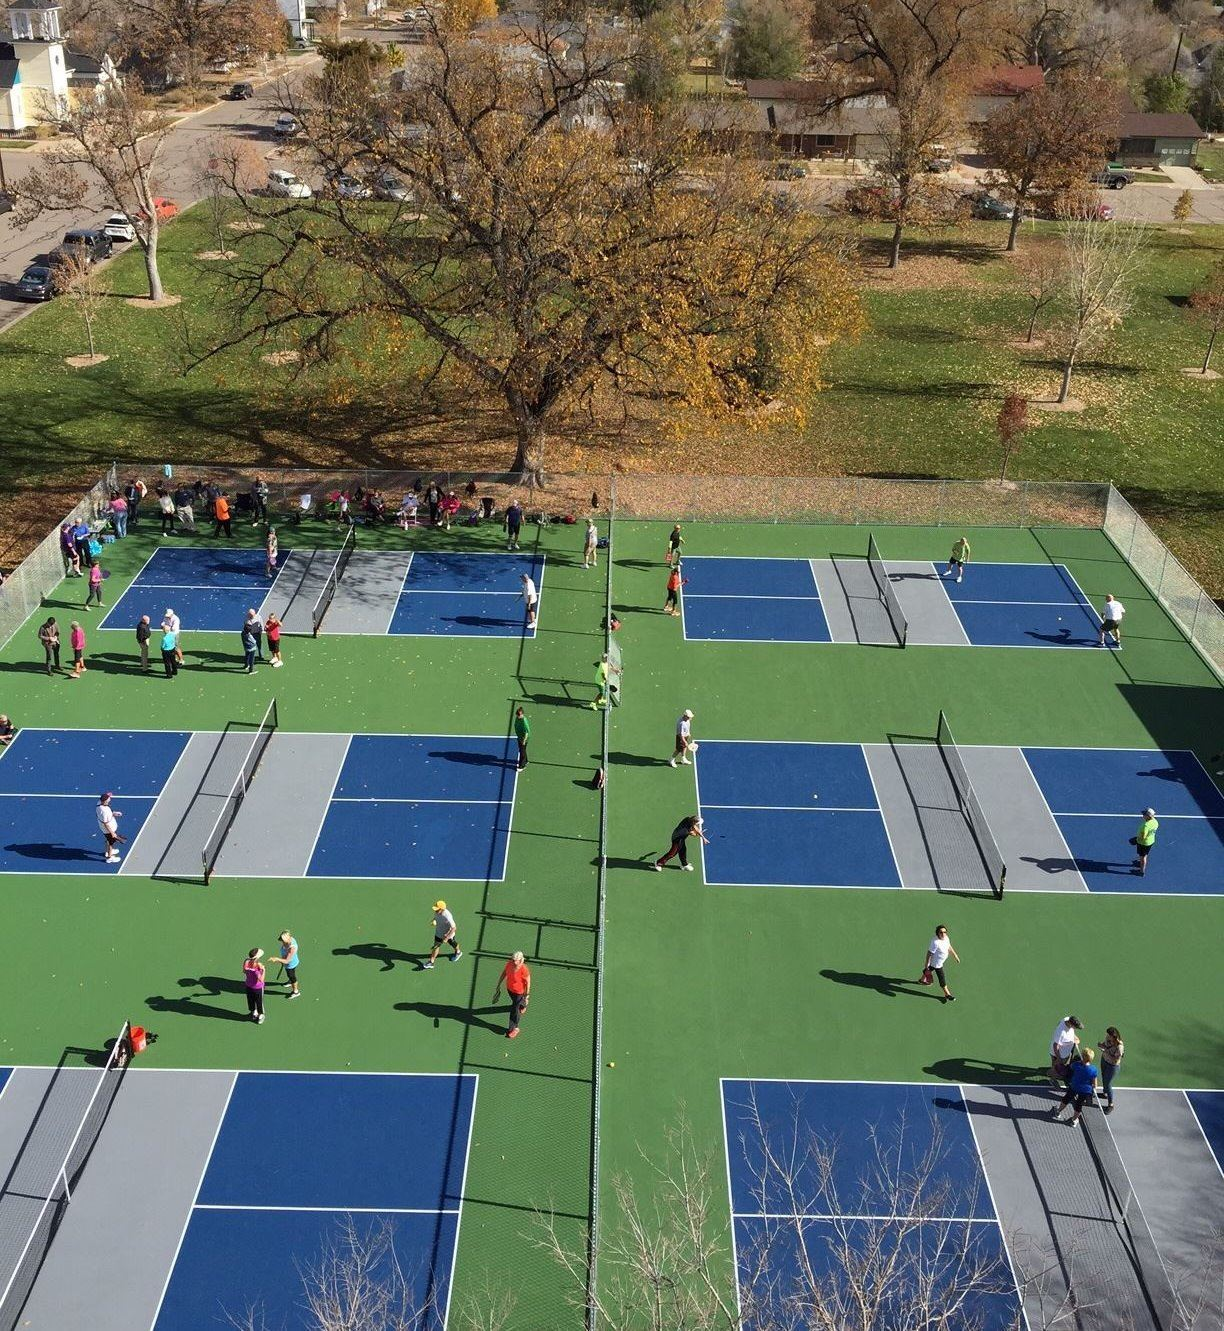 Several outdoor pickleball courts in a city park